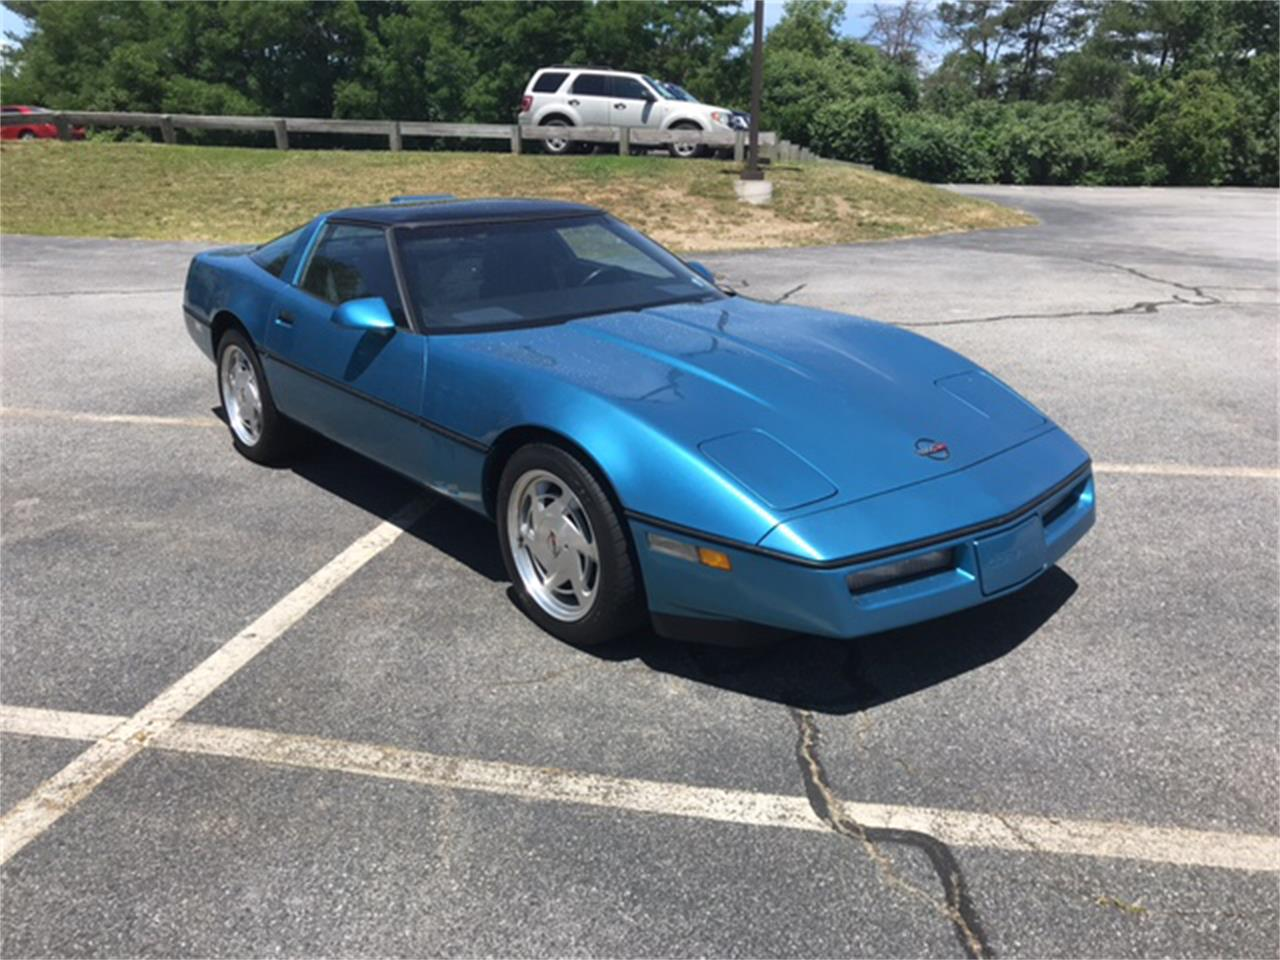 Large Picture of 1988 Chevrolet Corvette - $11,900.00 - NNGK